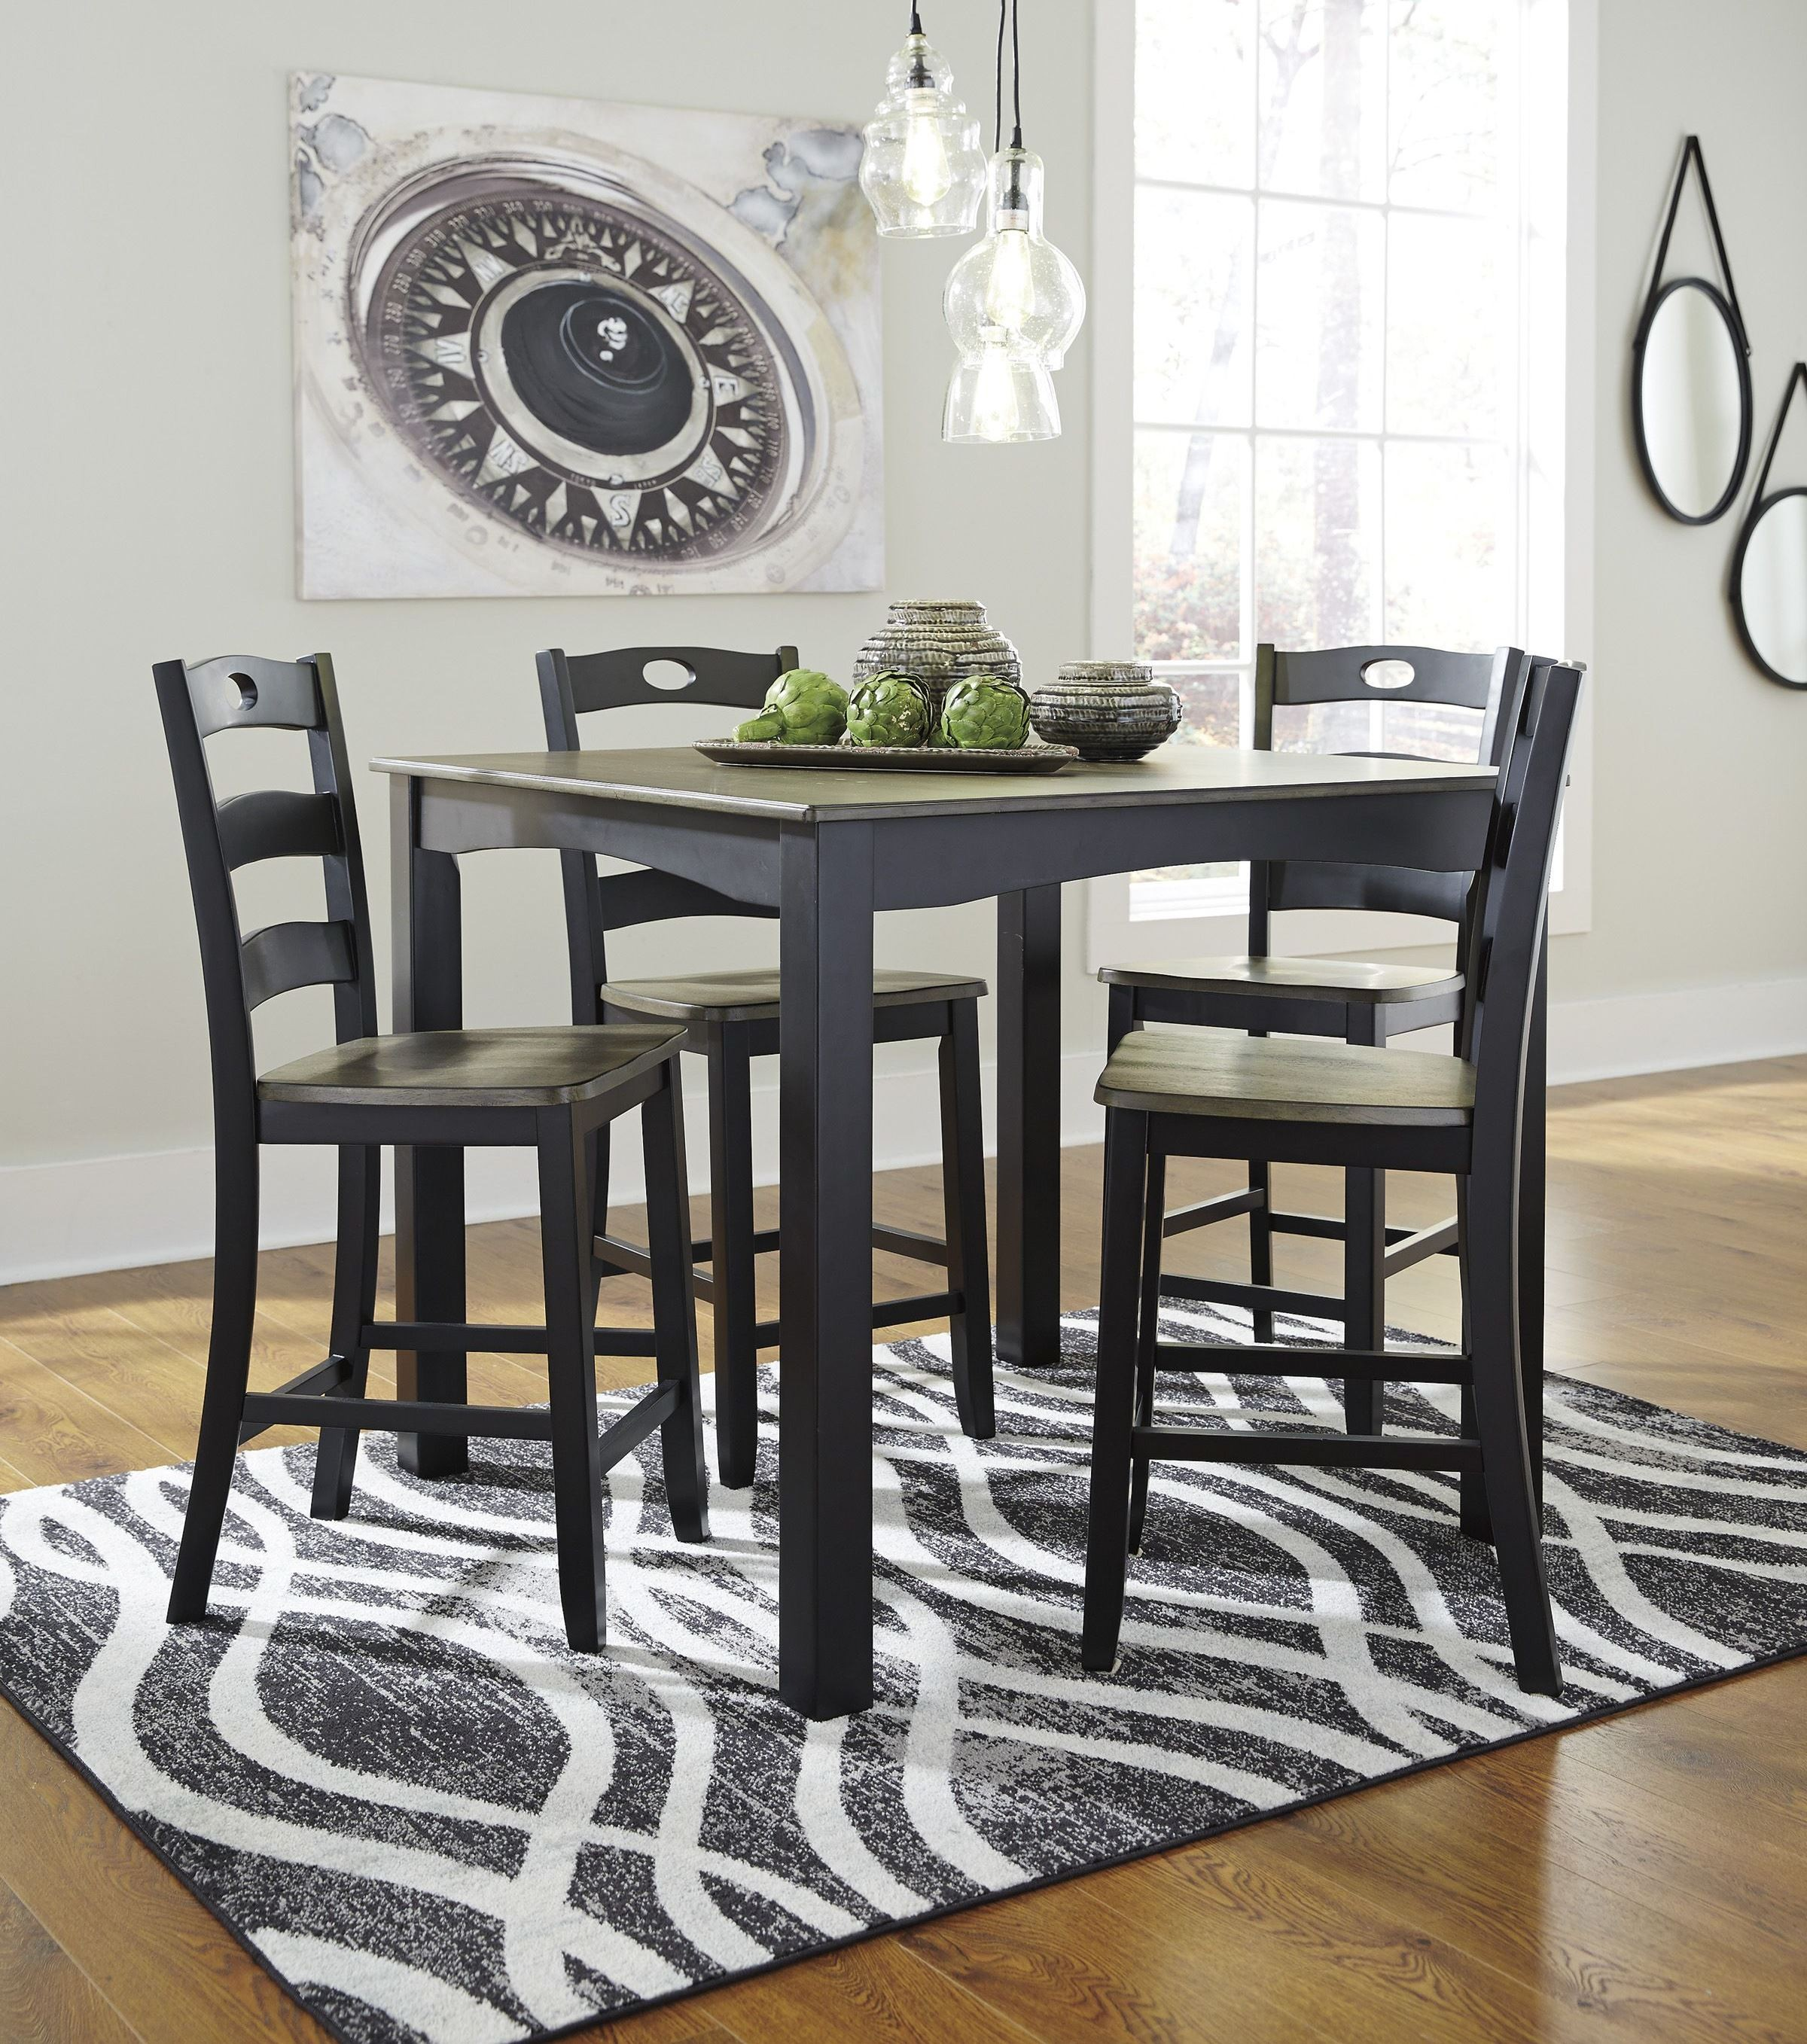 Froshburg 5 Pcs Grayish Brown Counter Height Dining Set from